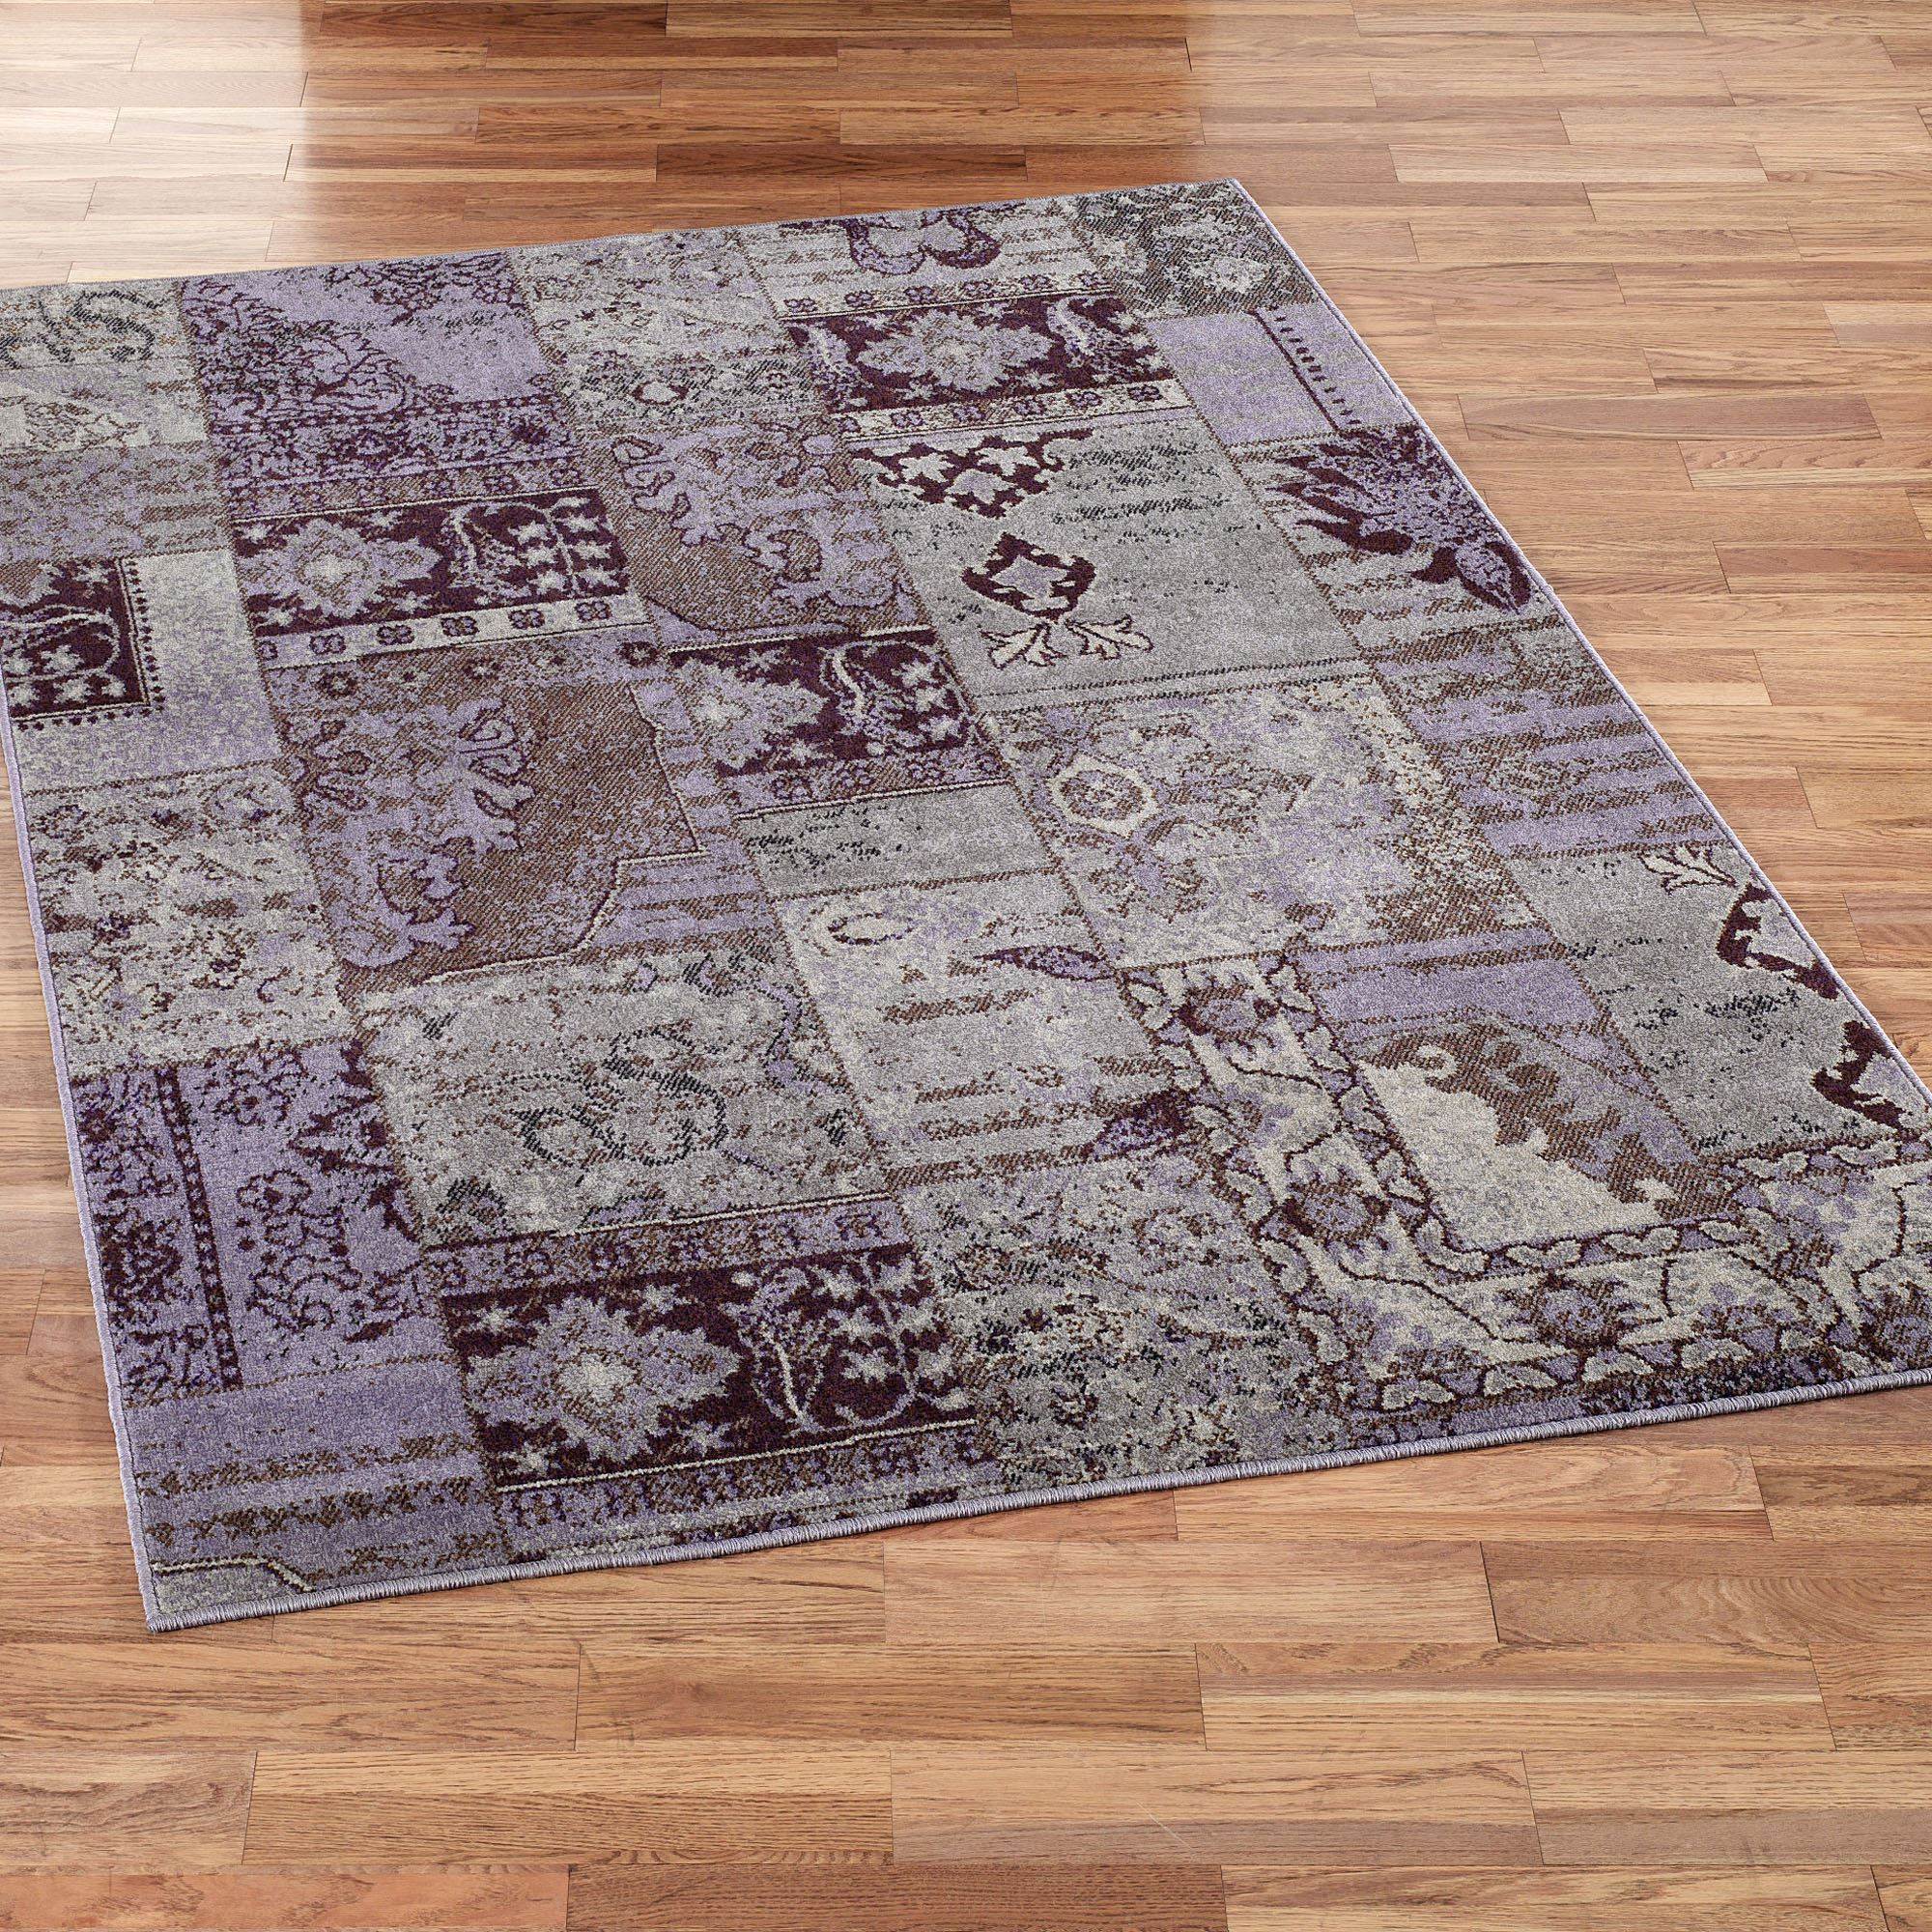 Antique Revival Rectangle Rug